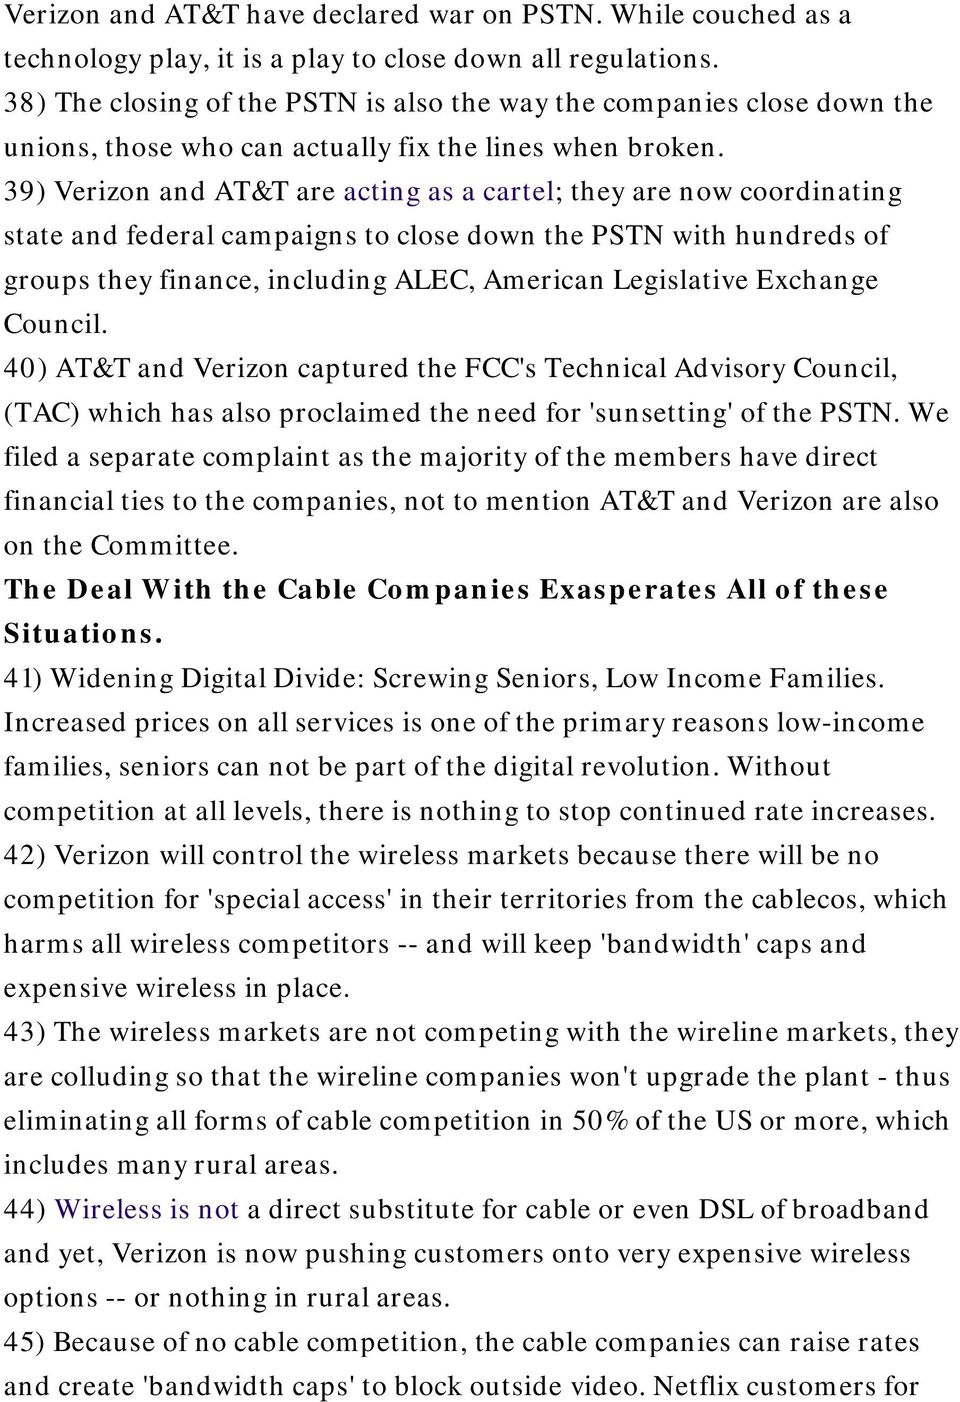 39) Verizon and AT&T are acting as a cartel; they are now coordinating state and federal campaigns to close down the PSTN with hundreds of groups they finance, including ALEC, American Legislative